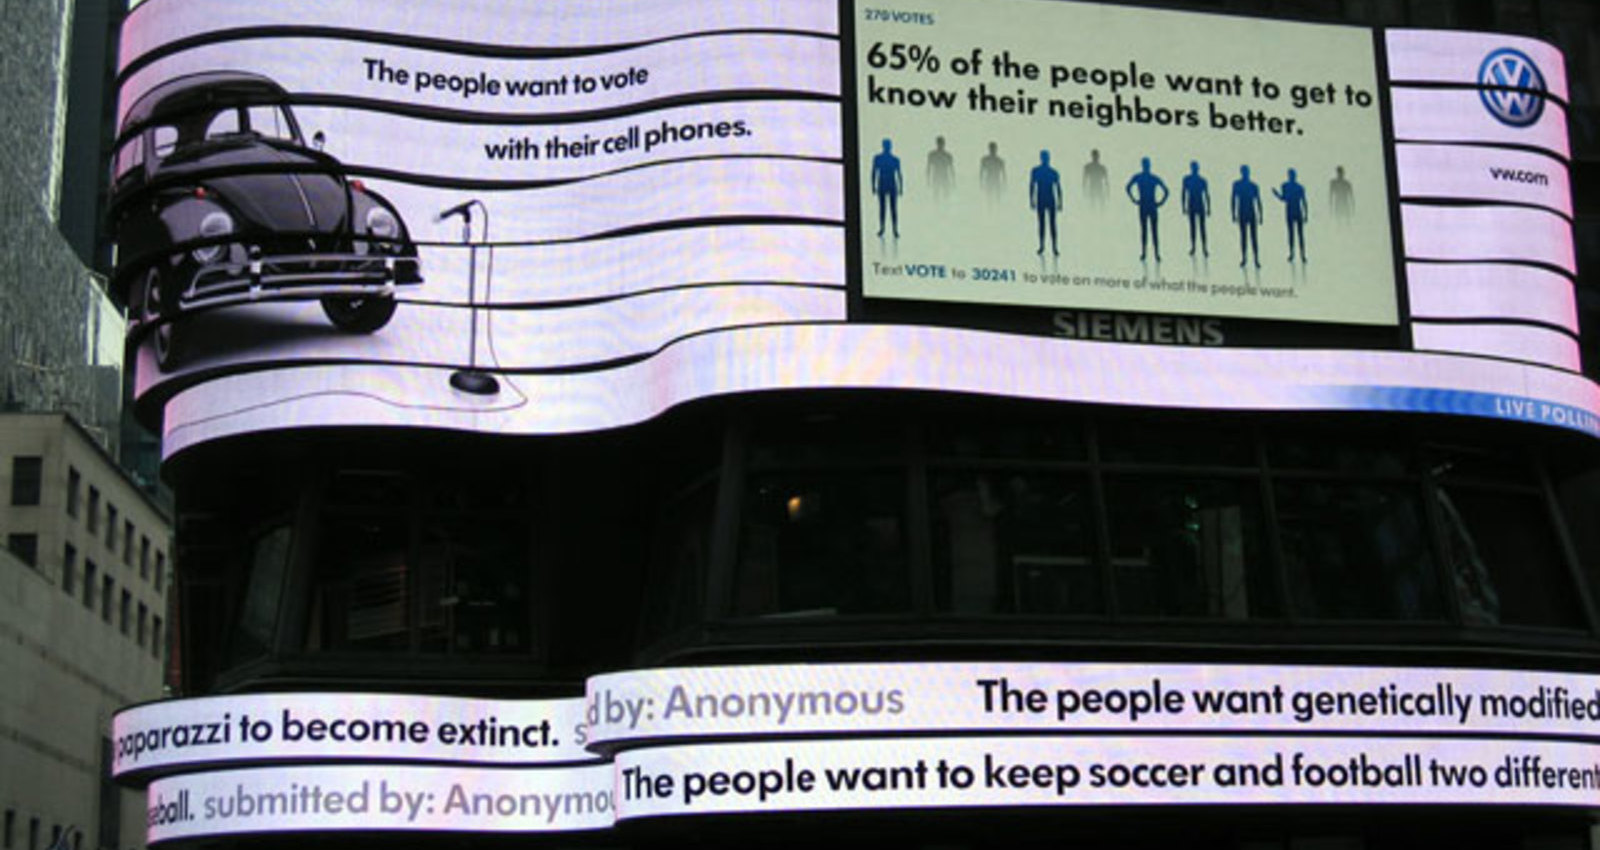 VW Das Auto/What The People Want - Max Rollout